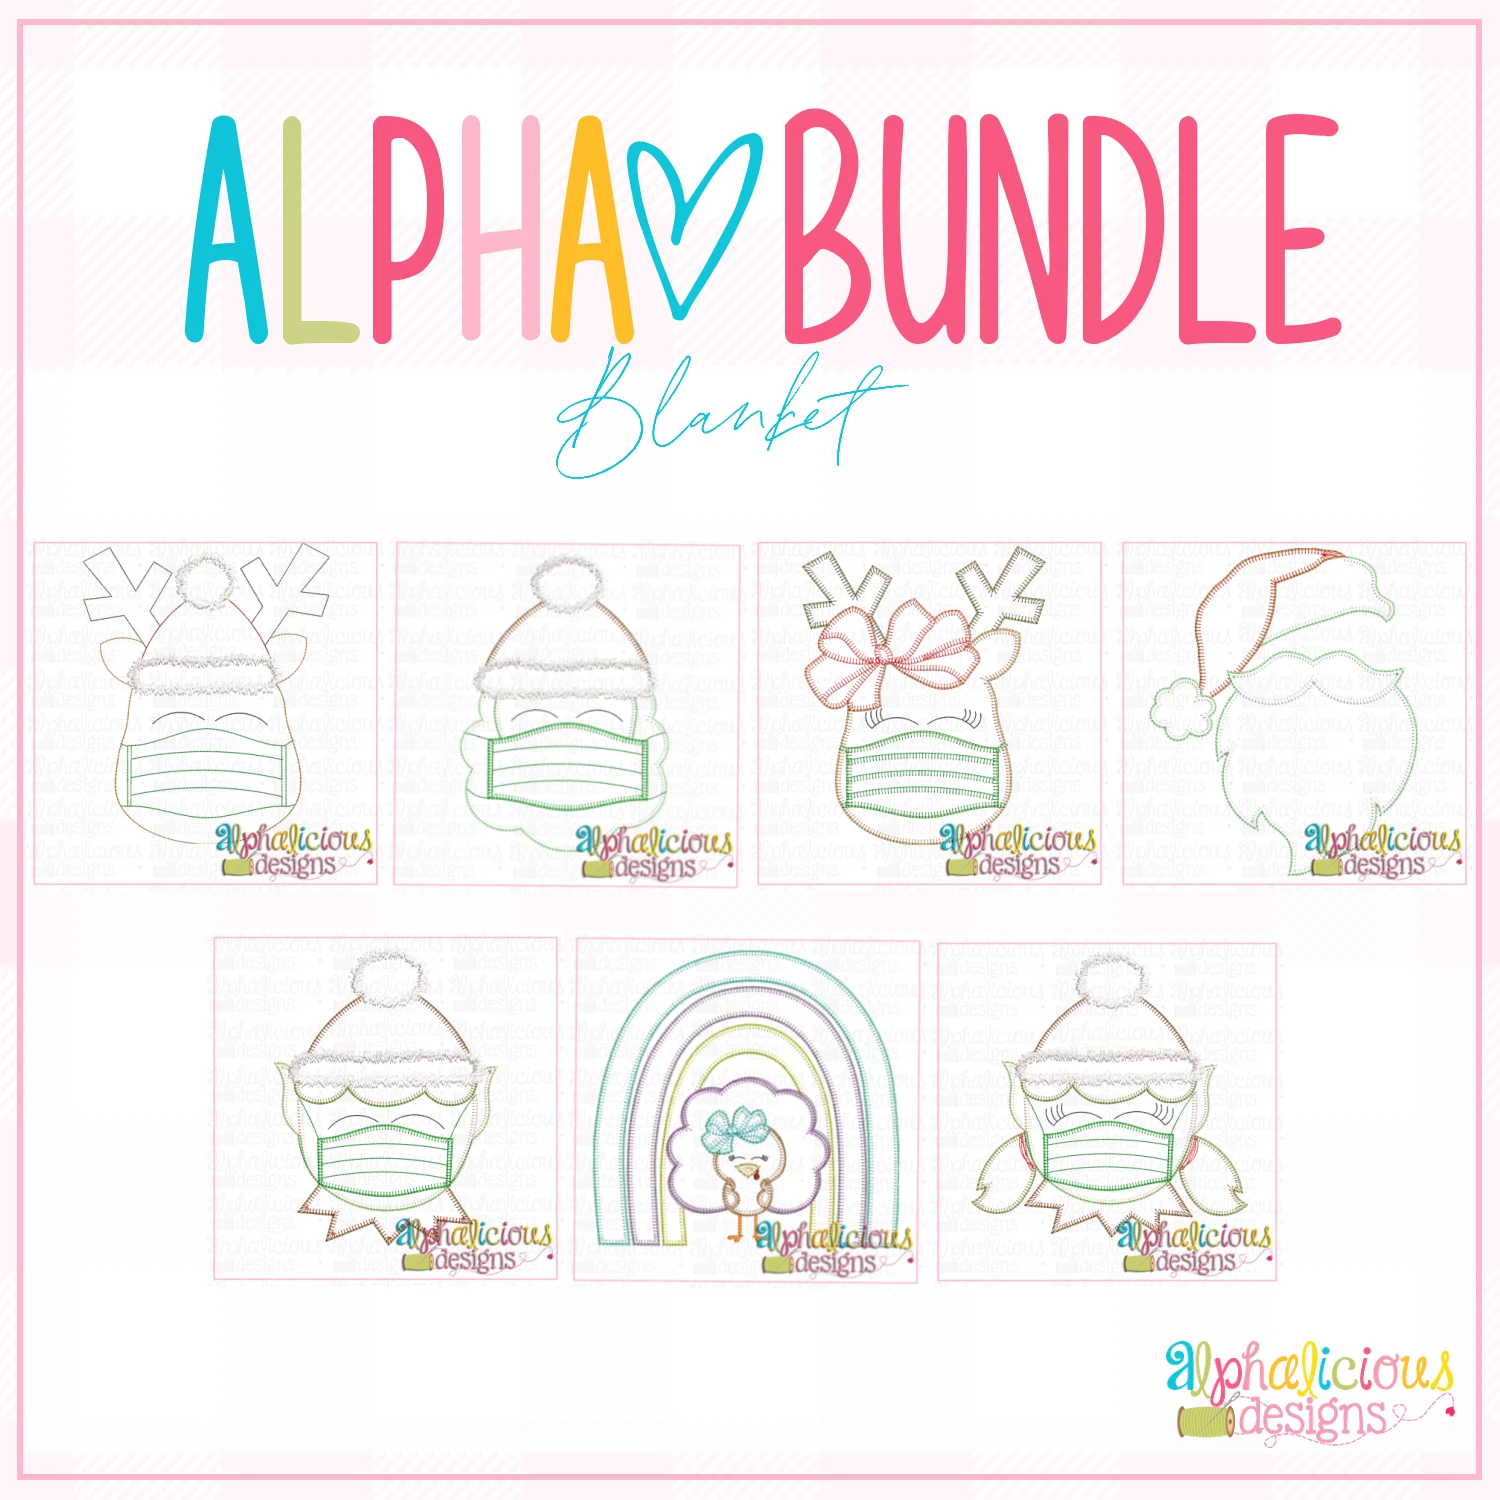 ALPHA BUNDLE-10-23-20 Release-Blanket